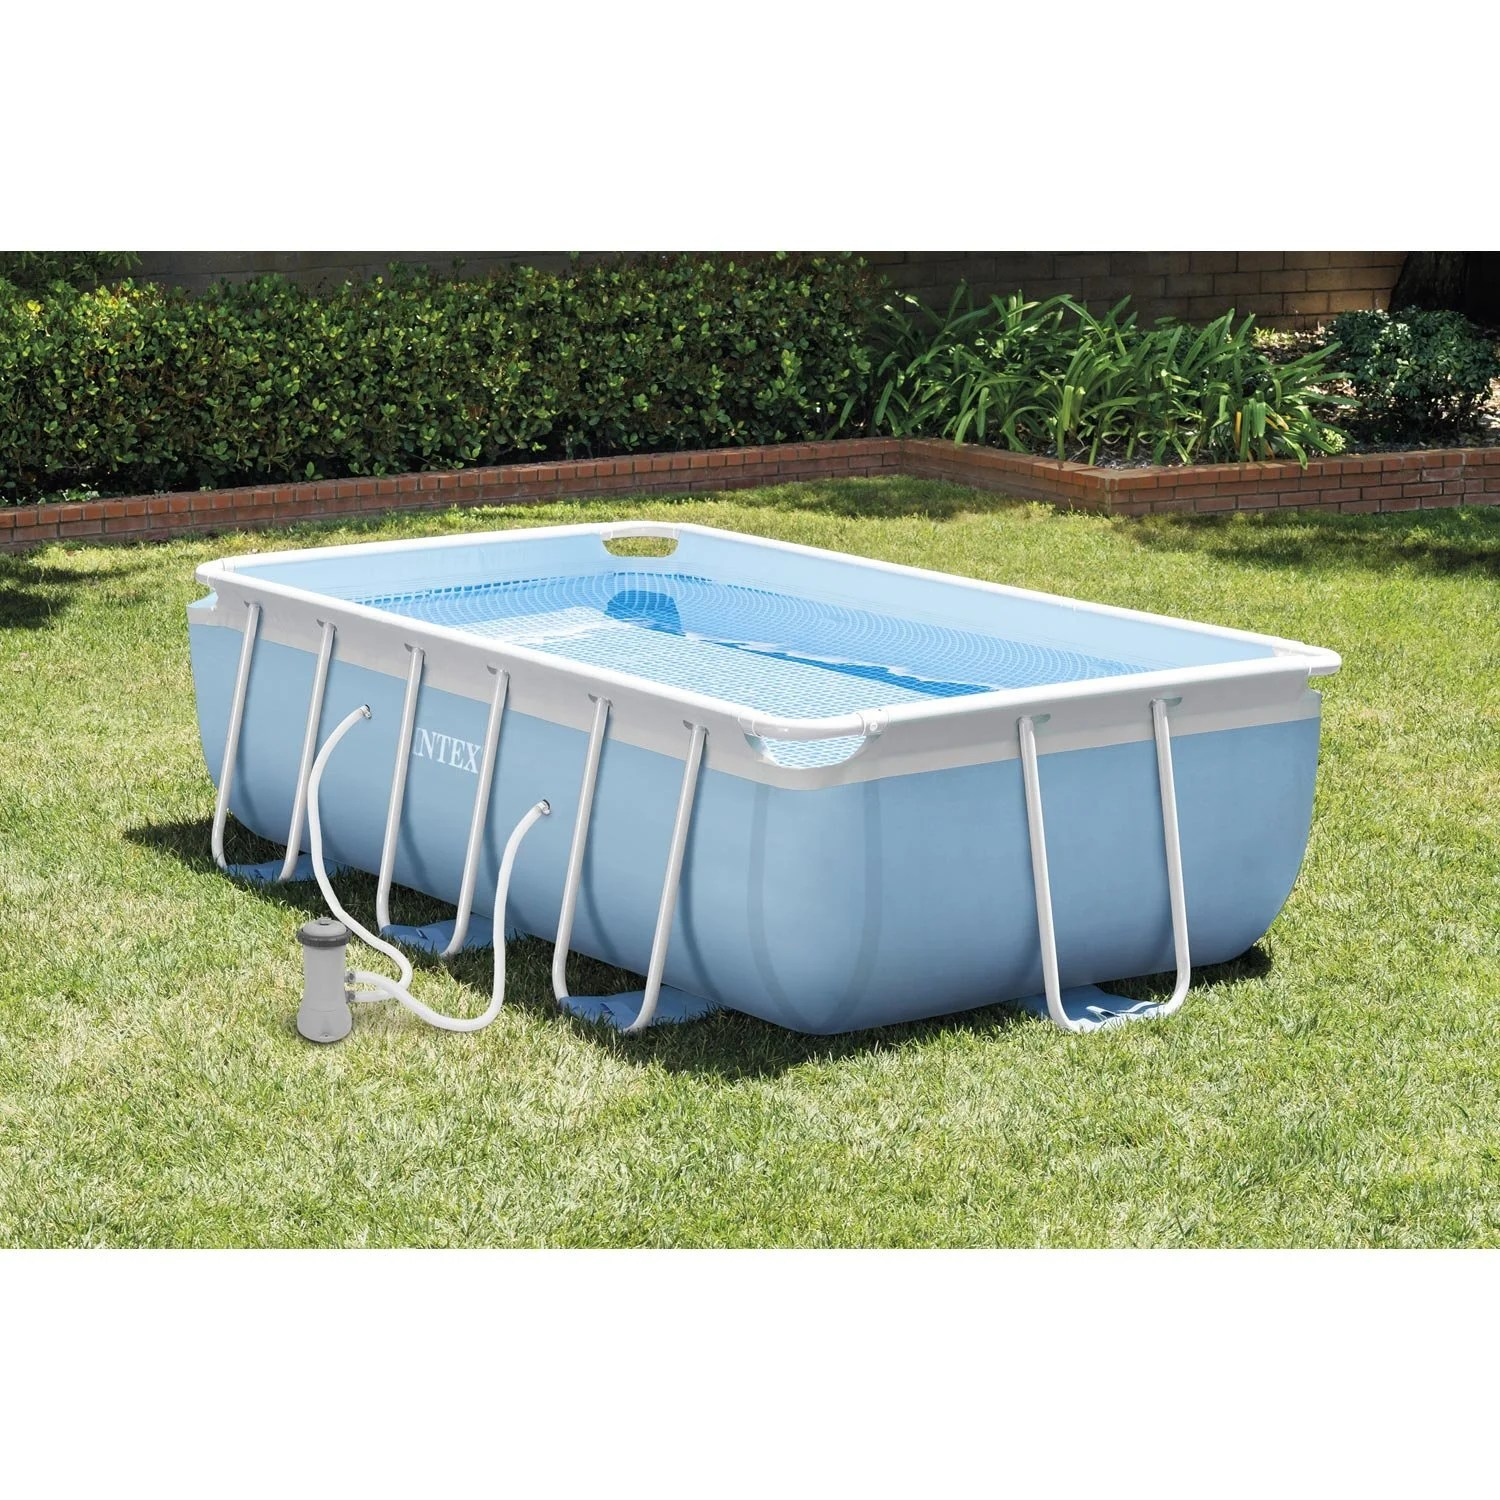 Piscine Tubulaire Leroy Merlin Piscine Gonflable Rectangulaire Leroy Merlin